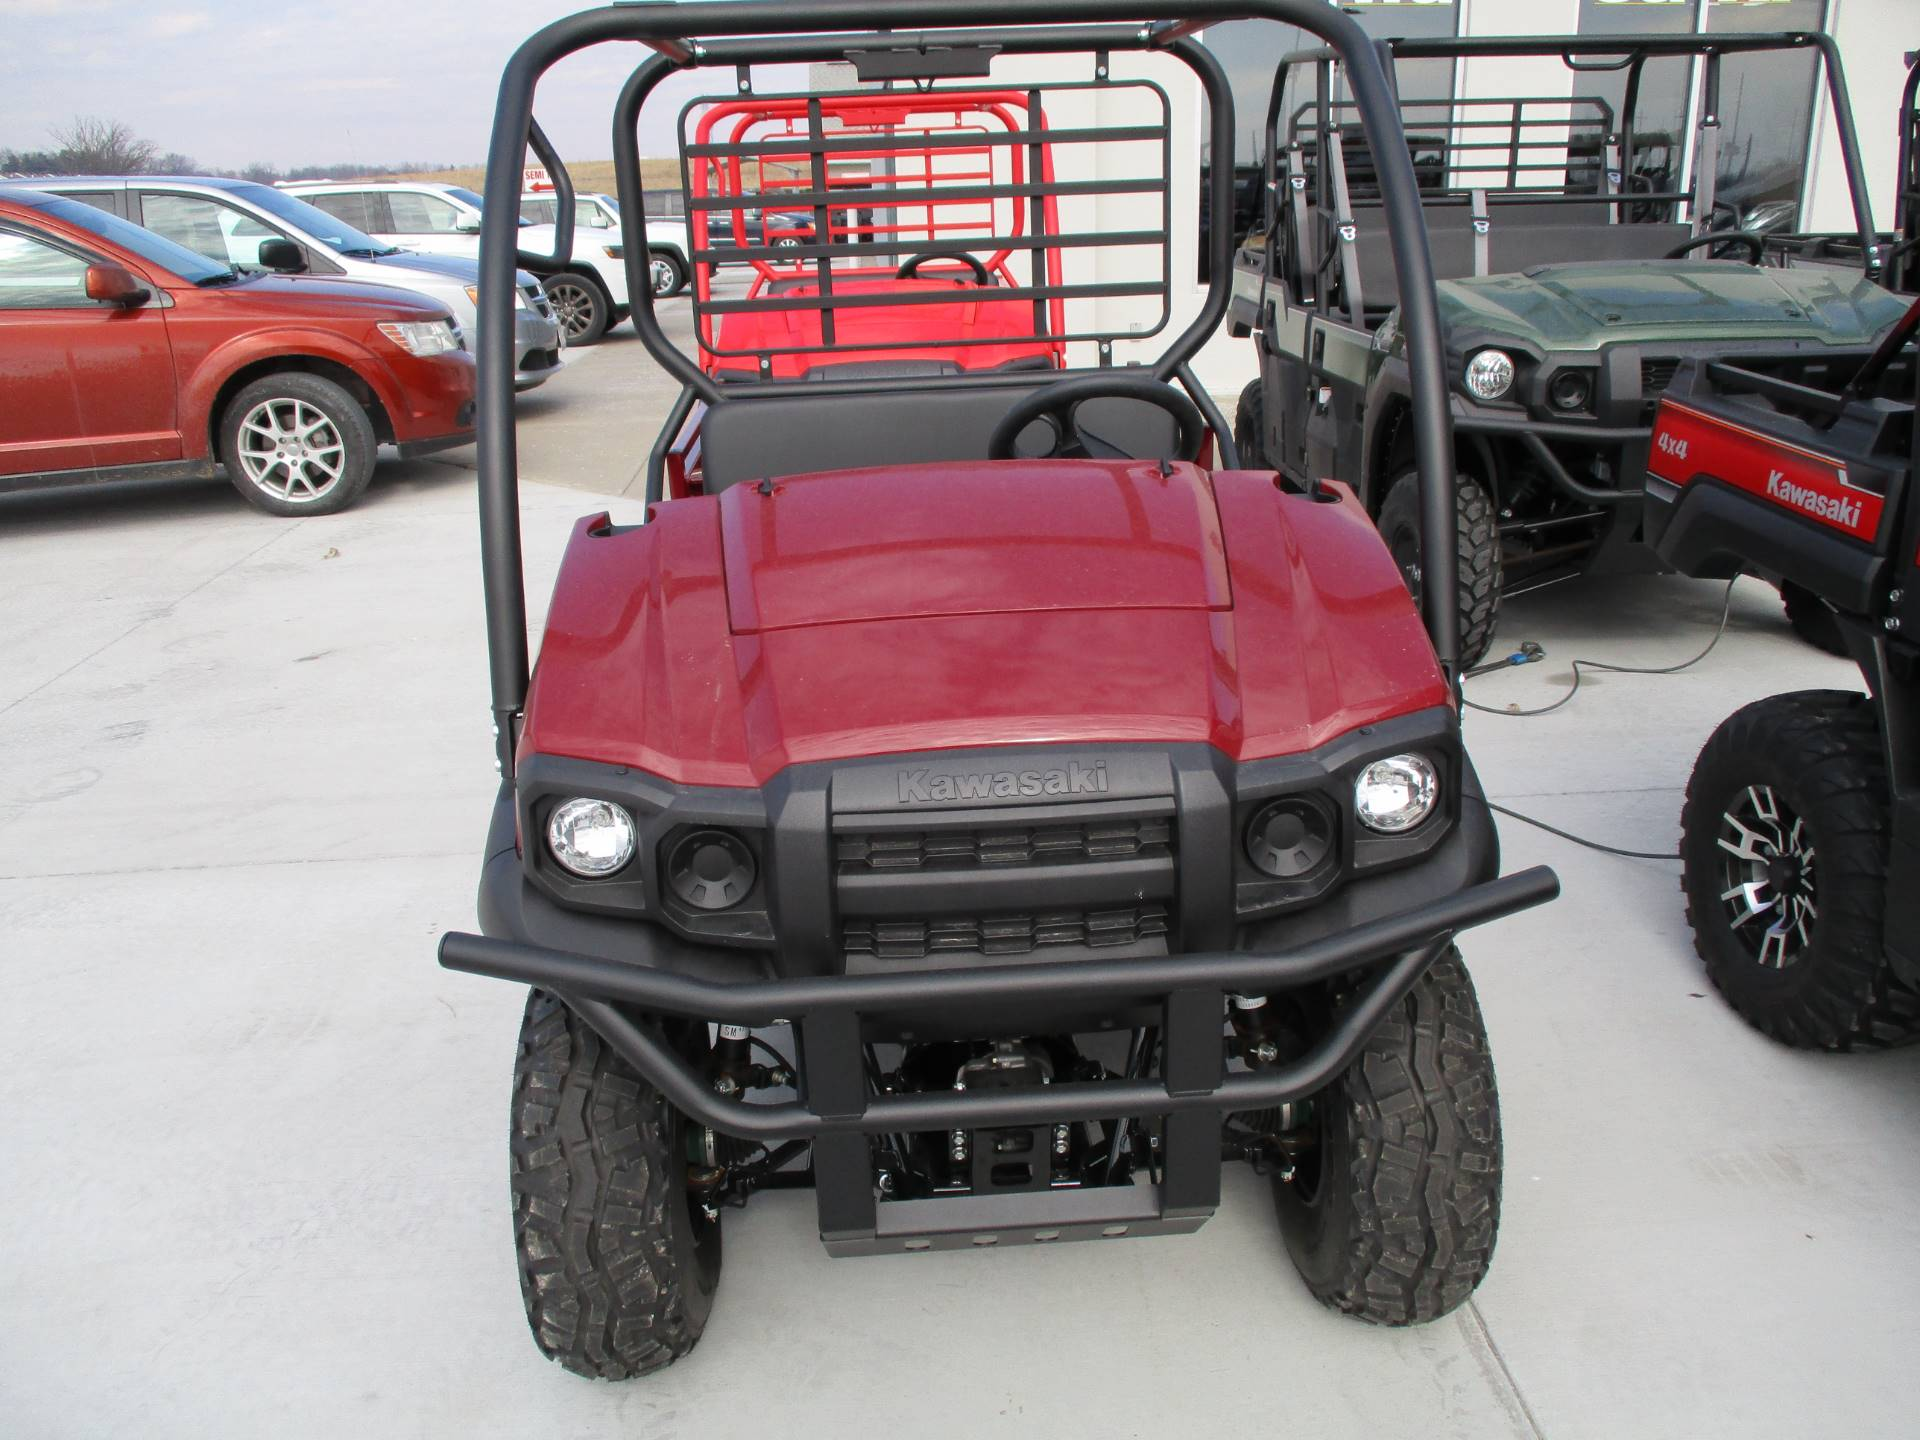 2018 Kawasaki mule sx in Highland, Illinois